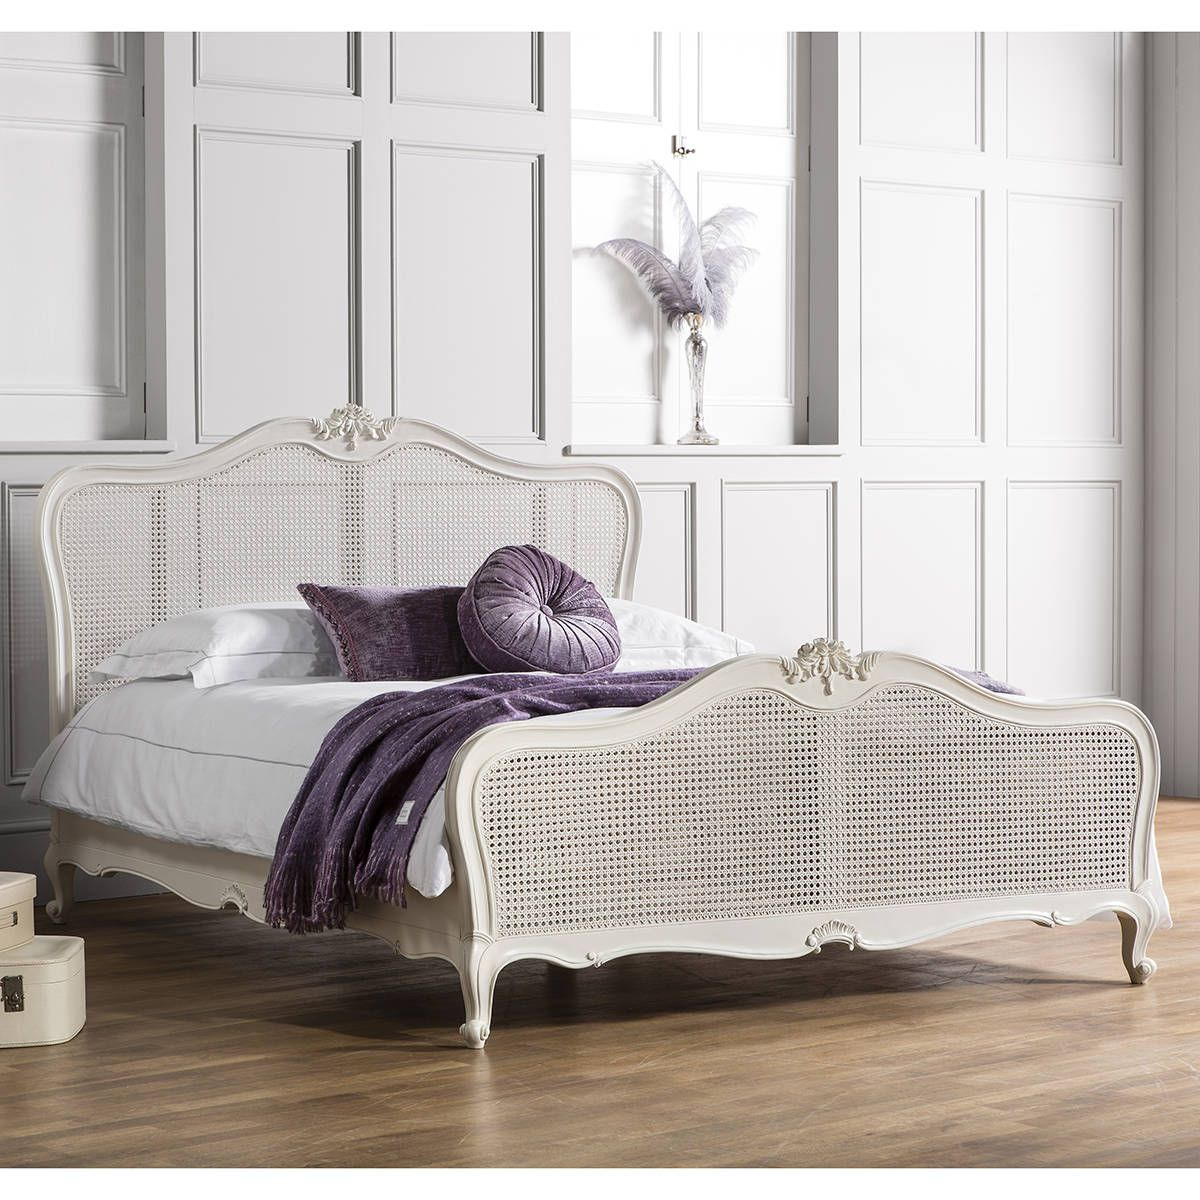 Frank Hudson Chic Vanilla Cane French Bedstead French